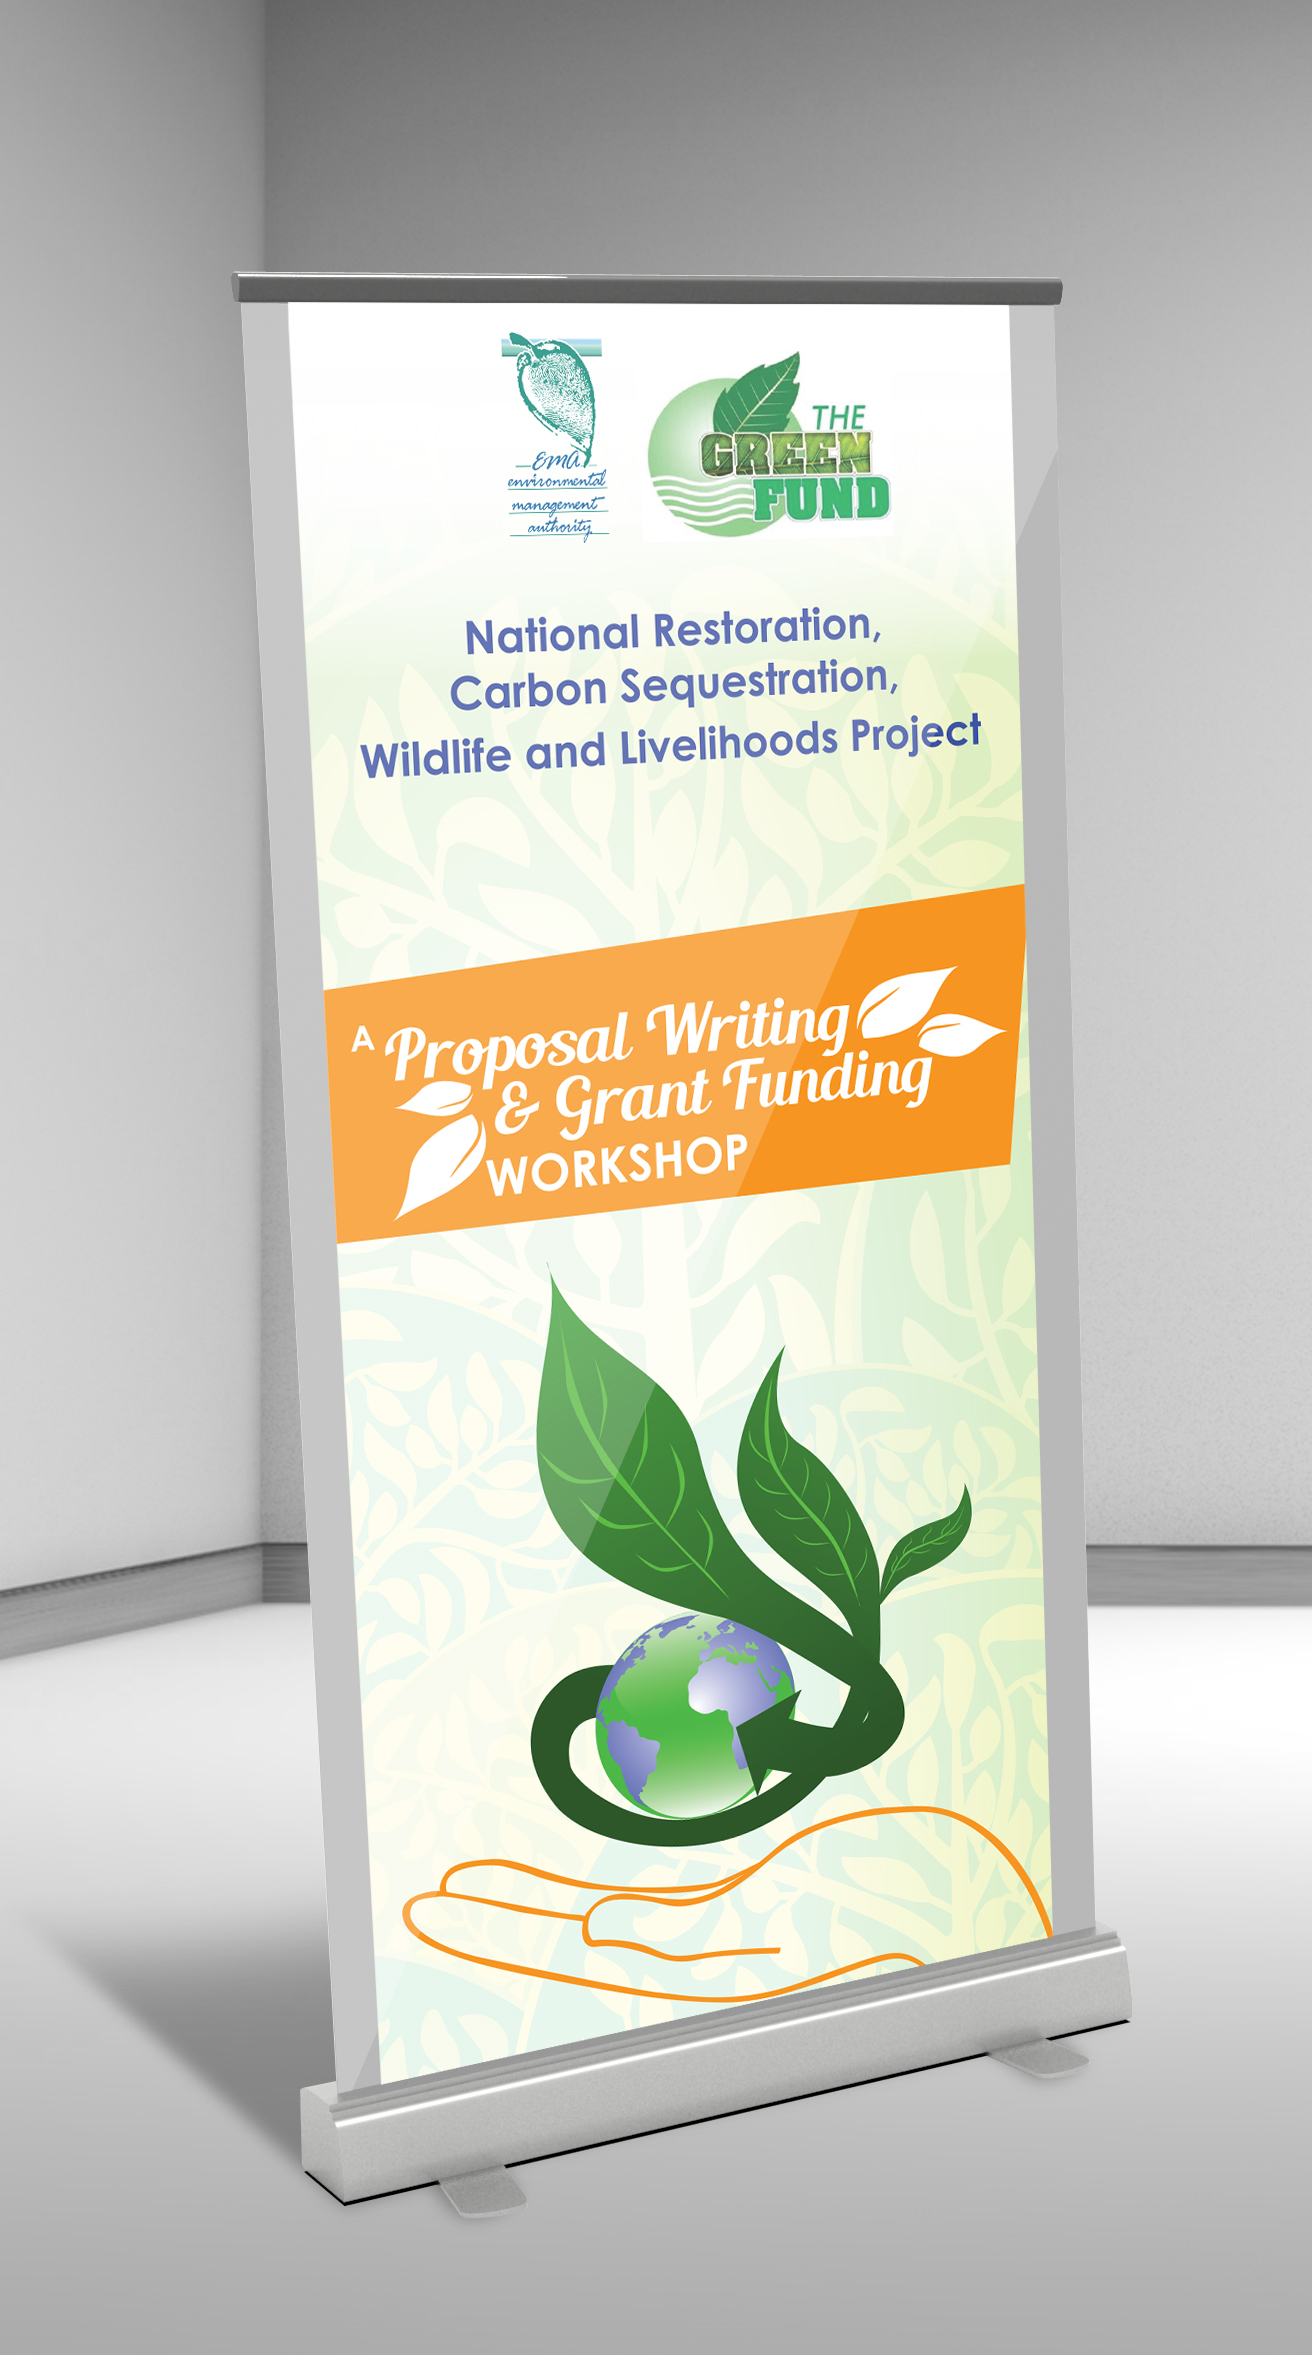 Proposal Writing and Grant Funding Workshop Standee - Client: The Environmental Management AuthorityDescription: Design Branded Standee for the Proposal and Grand Funding Workshop.Year: 2017